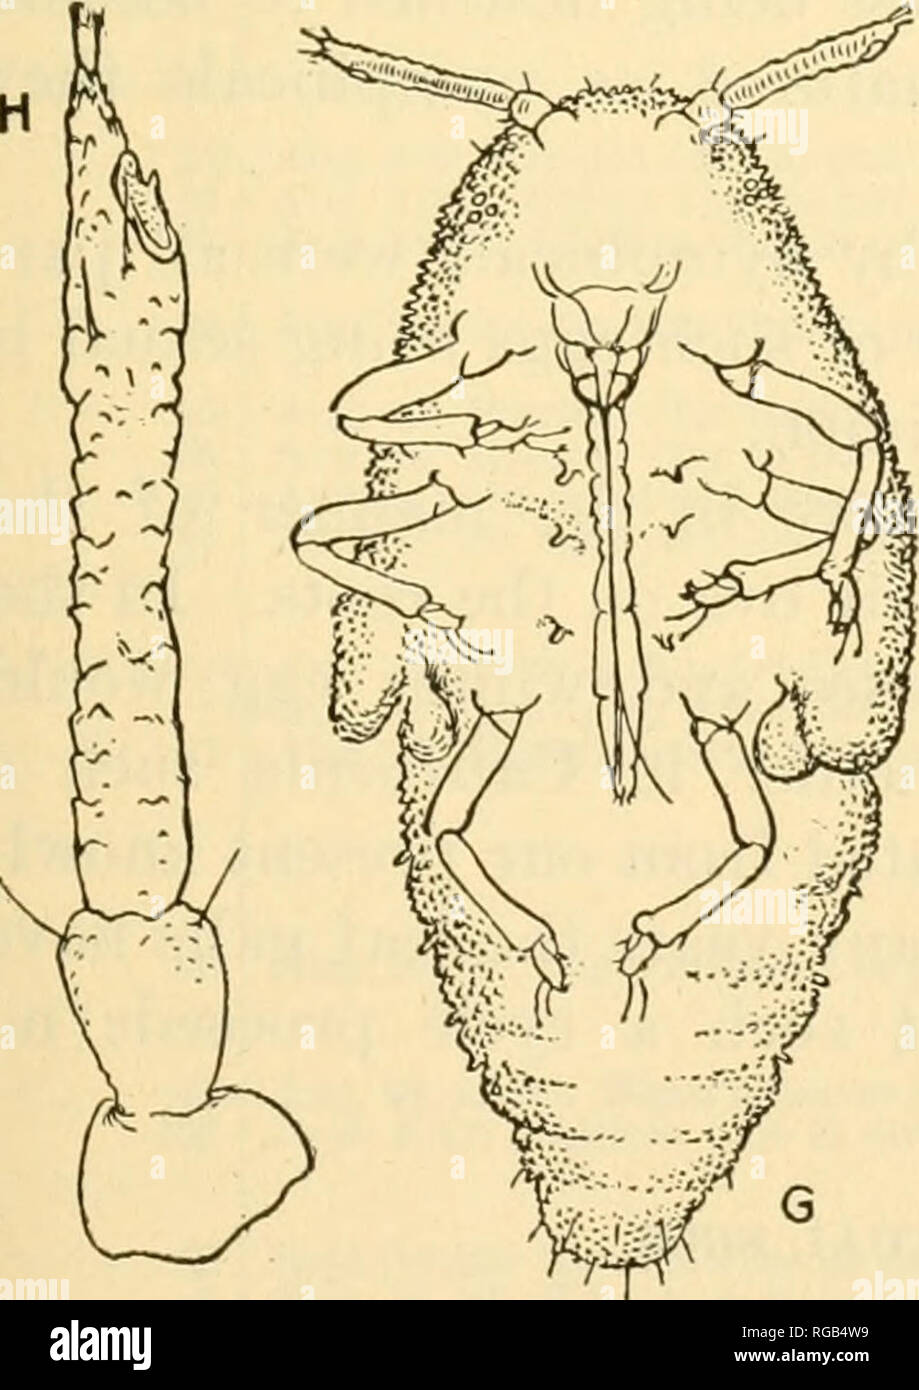 . Bulletin of the U.S. Department of Agriculture. Agriculture. Phylloxera vitifoUae: Types of antennae of intermediates. Oreatly enlarged. eyes were absent, and in no case were ocelli discernible. In most in- dividuals there were two sensoria on the last antennal joint, and in one antenna there were two small basal sensoria and the usual apical sensorium, makin^: three in all. The basal sen- soria were not in any case as large as those of the winged migrant. The an- tennae and legs were about as long as those of the nymph, noticeably longer on the average than those of the individuals of group - Stock Image